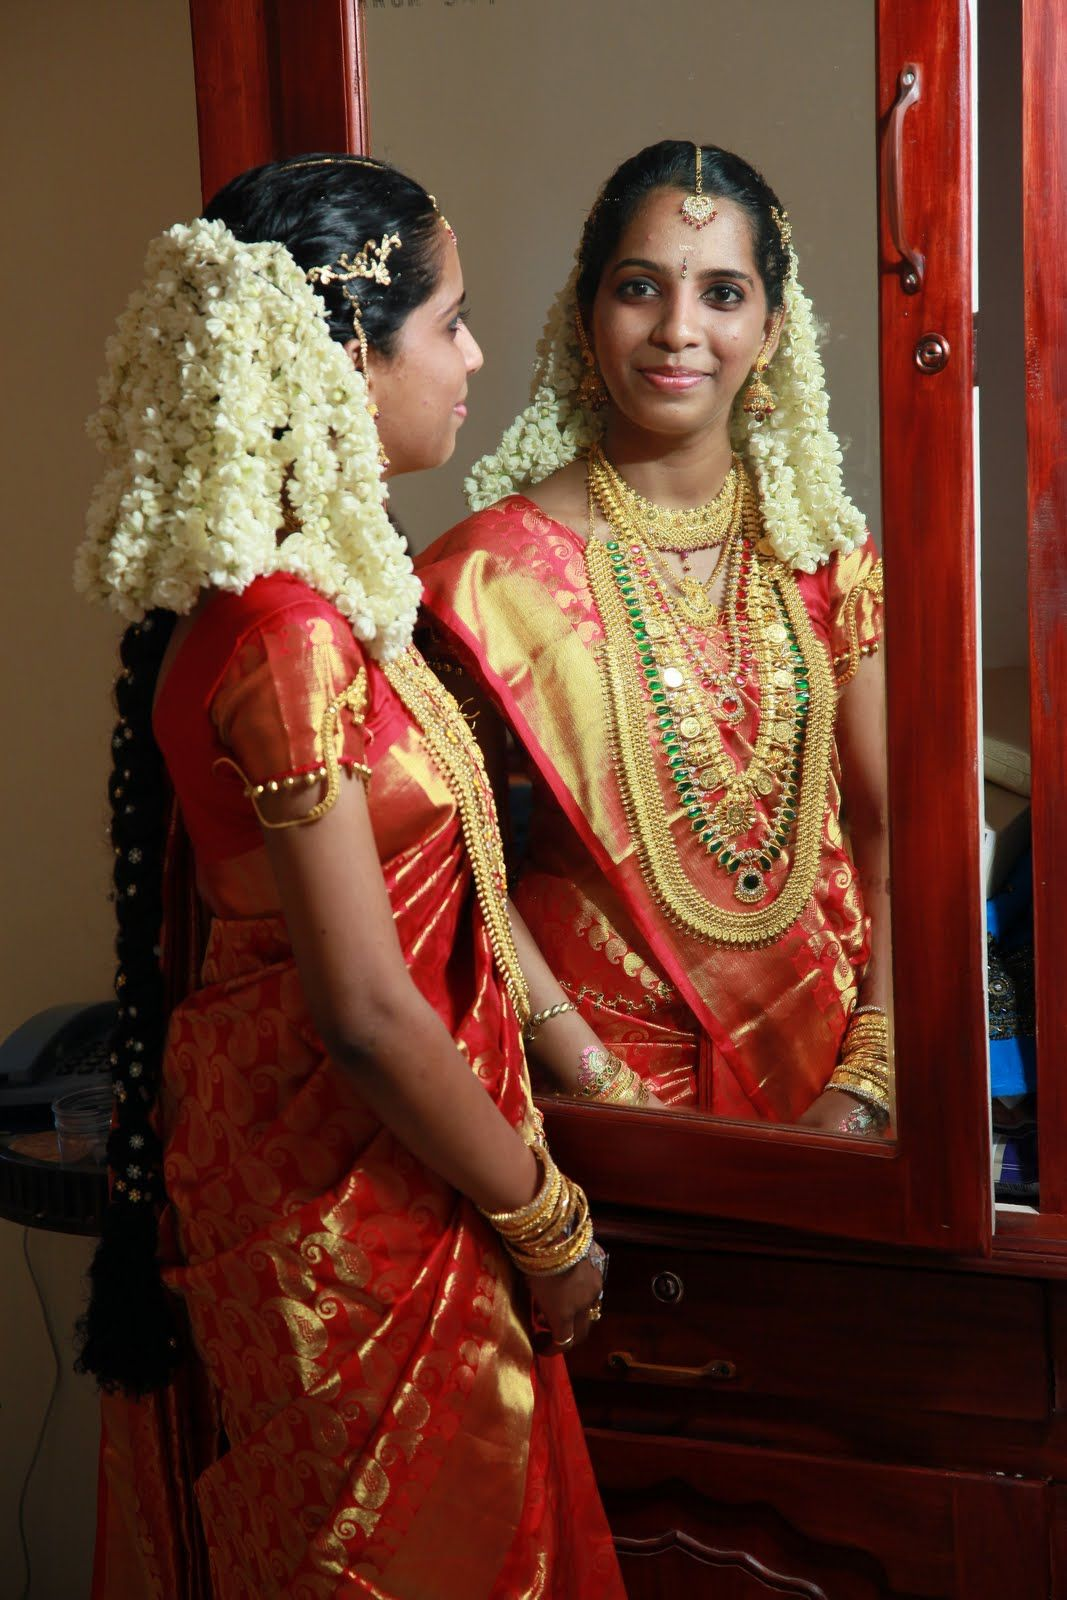 kerala bride with jasmine flowers | moggina jade - jadai